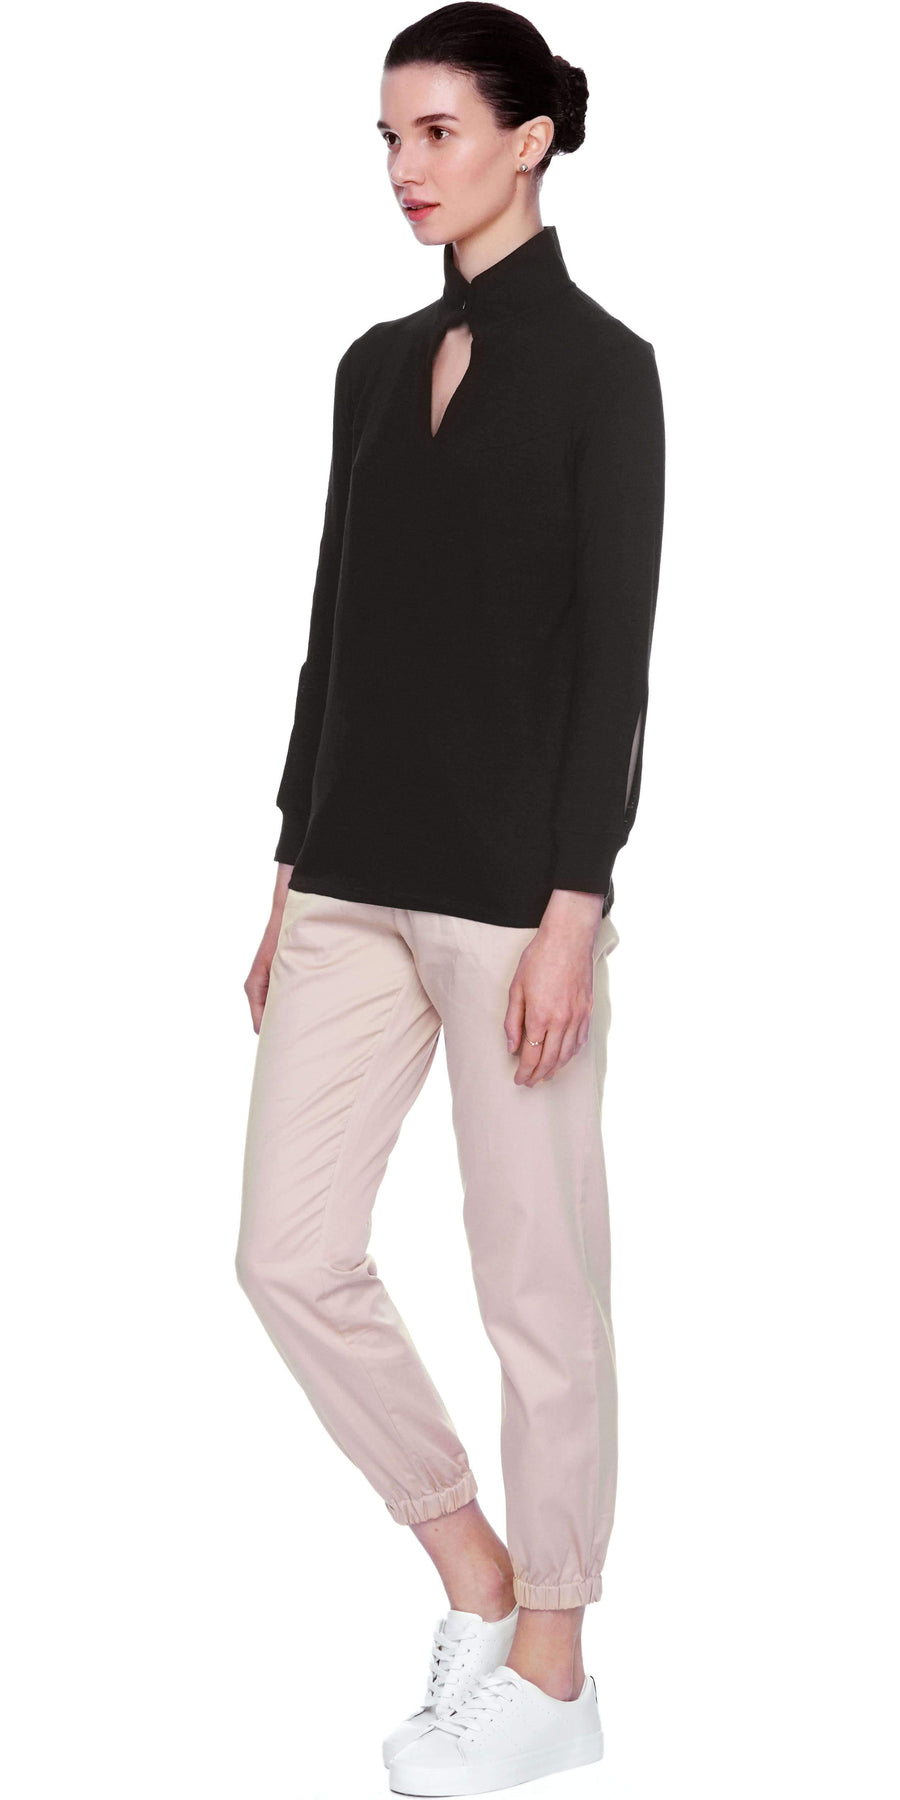 Long Sleeve Top with button detail - Black